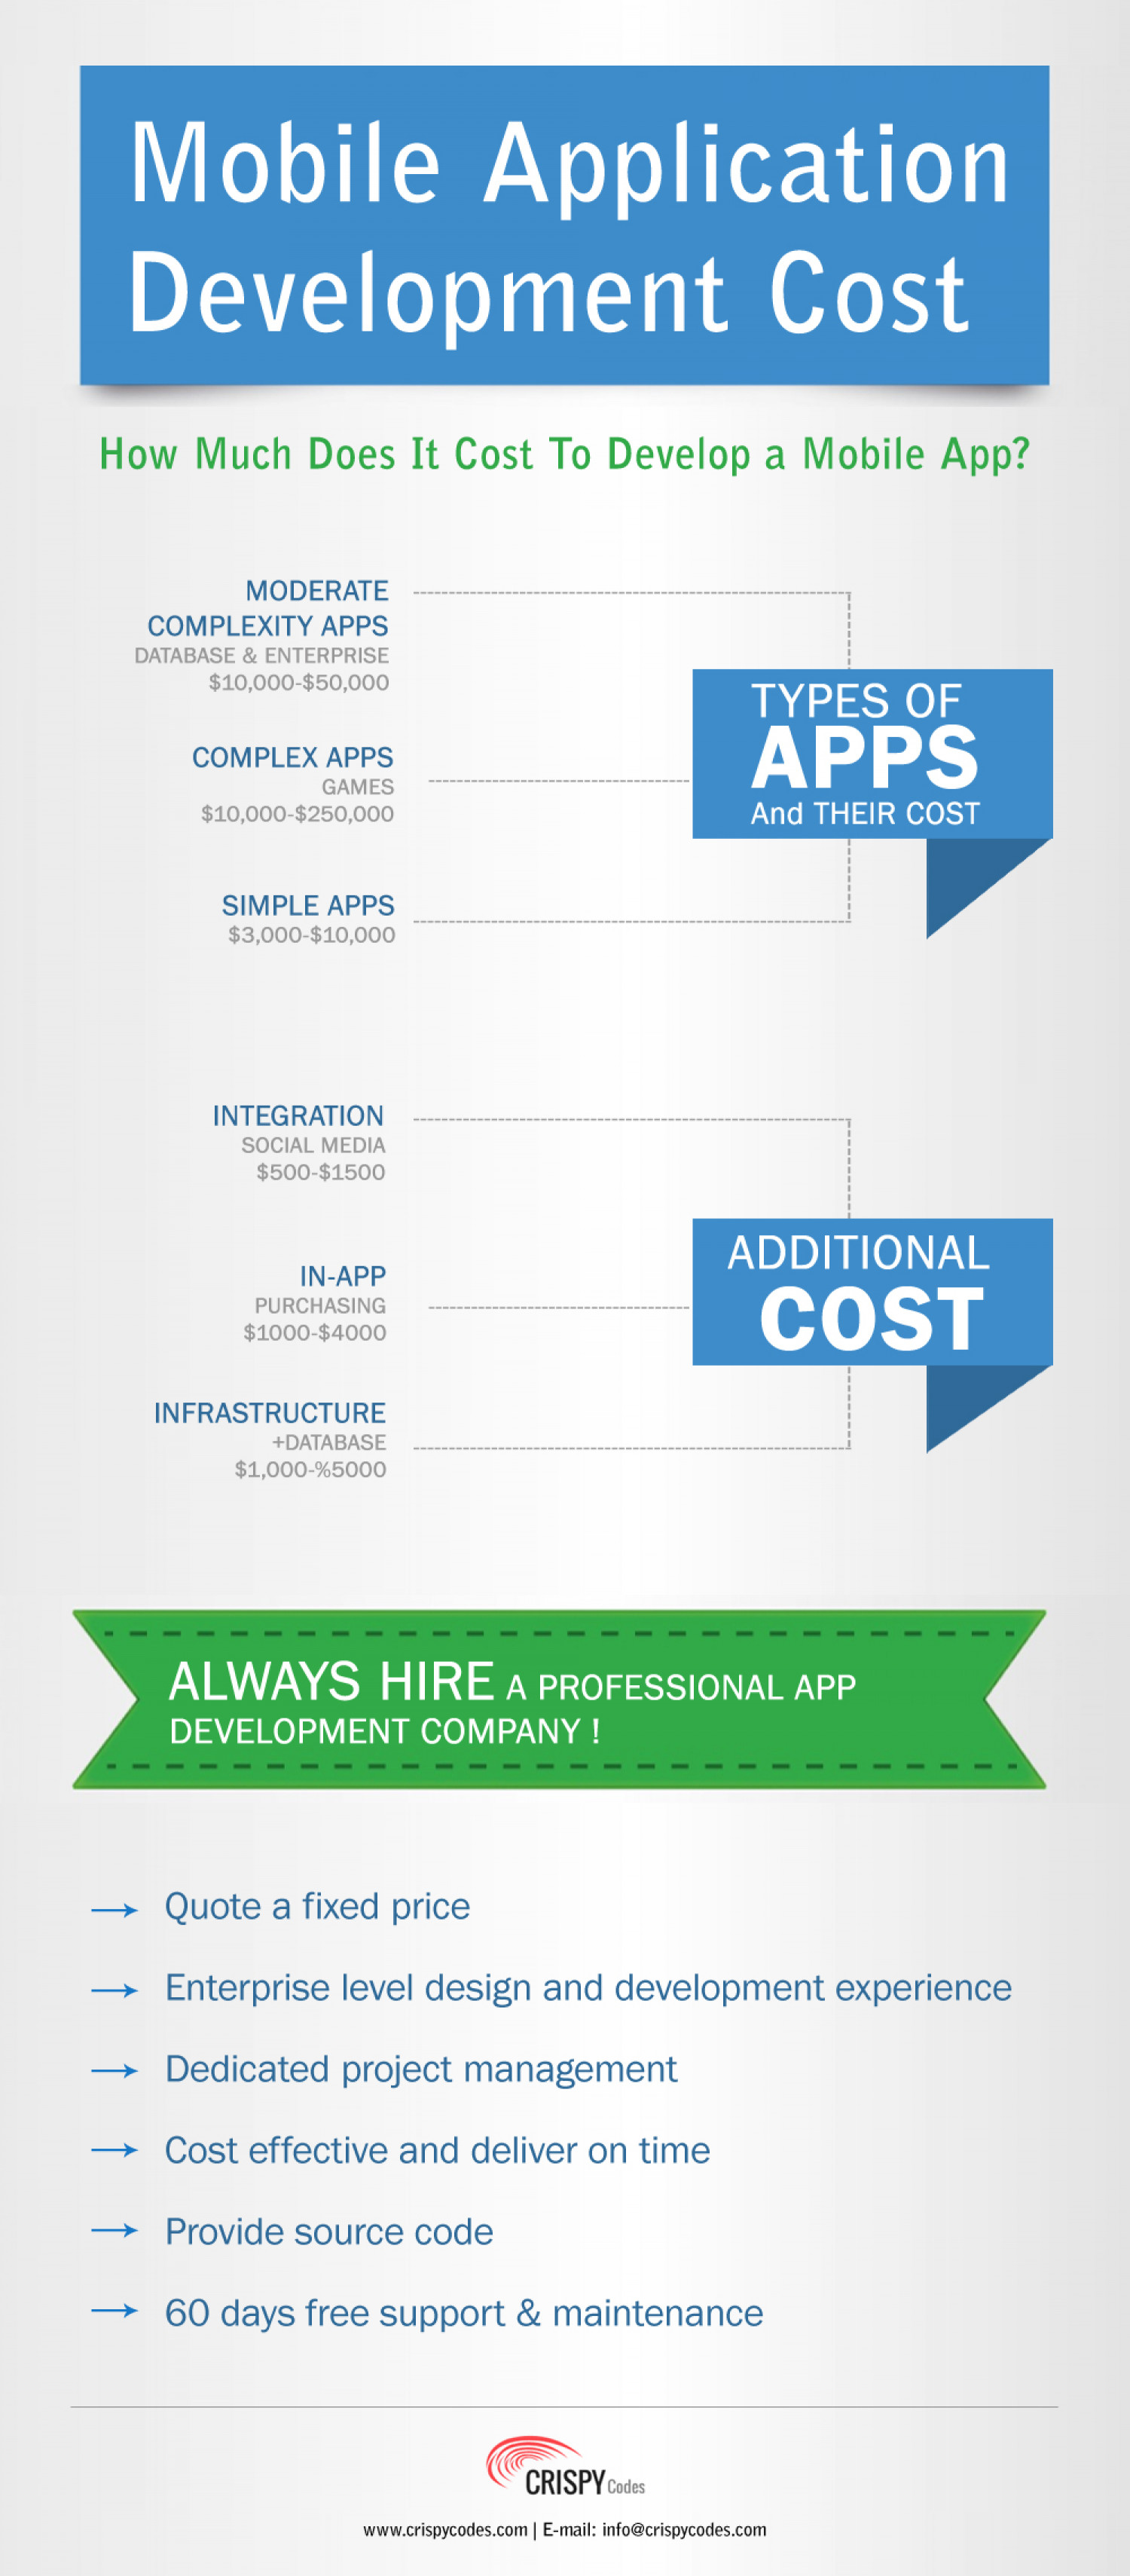 Mobile Application Development Cost Infographic